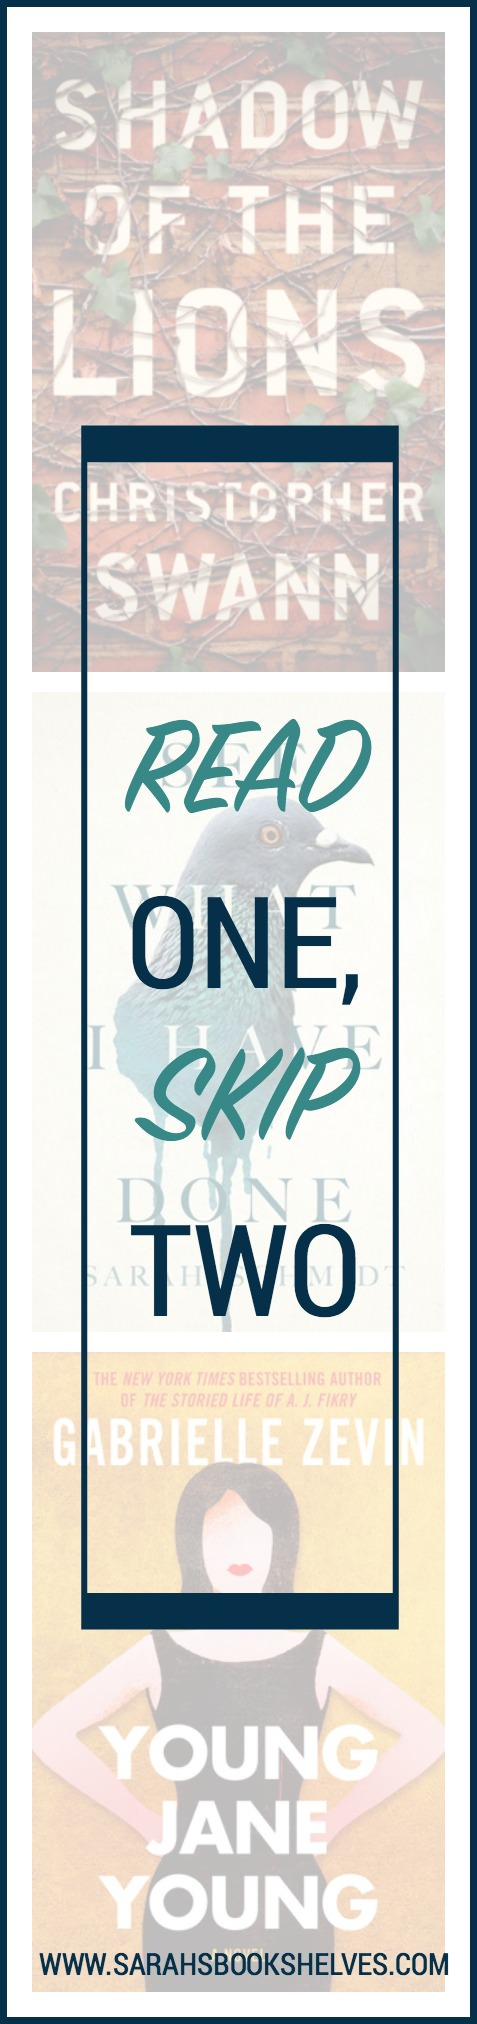 Read One, Skip Two: Shadow of the Lions is a solid campus mystery, See What I Have Done managed to bore me, and Young Jane Young fell off a cliff in the second half.